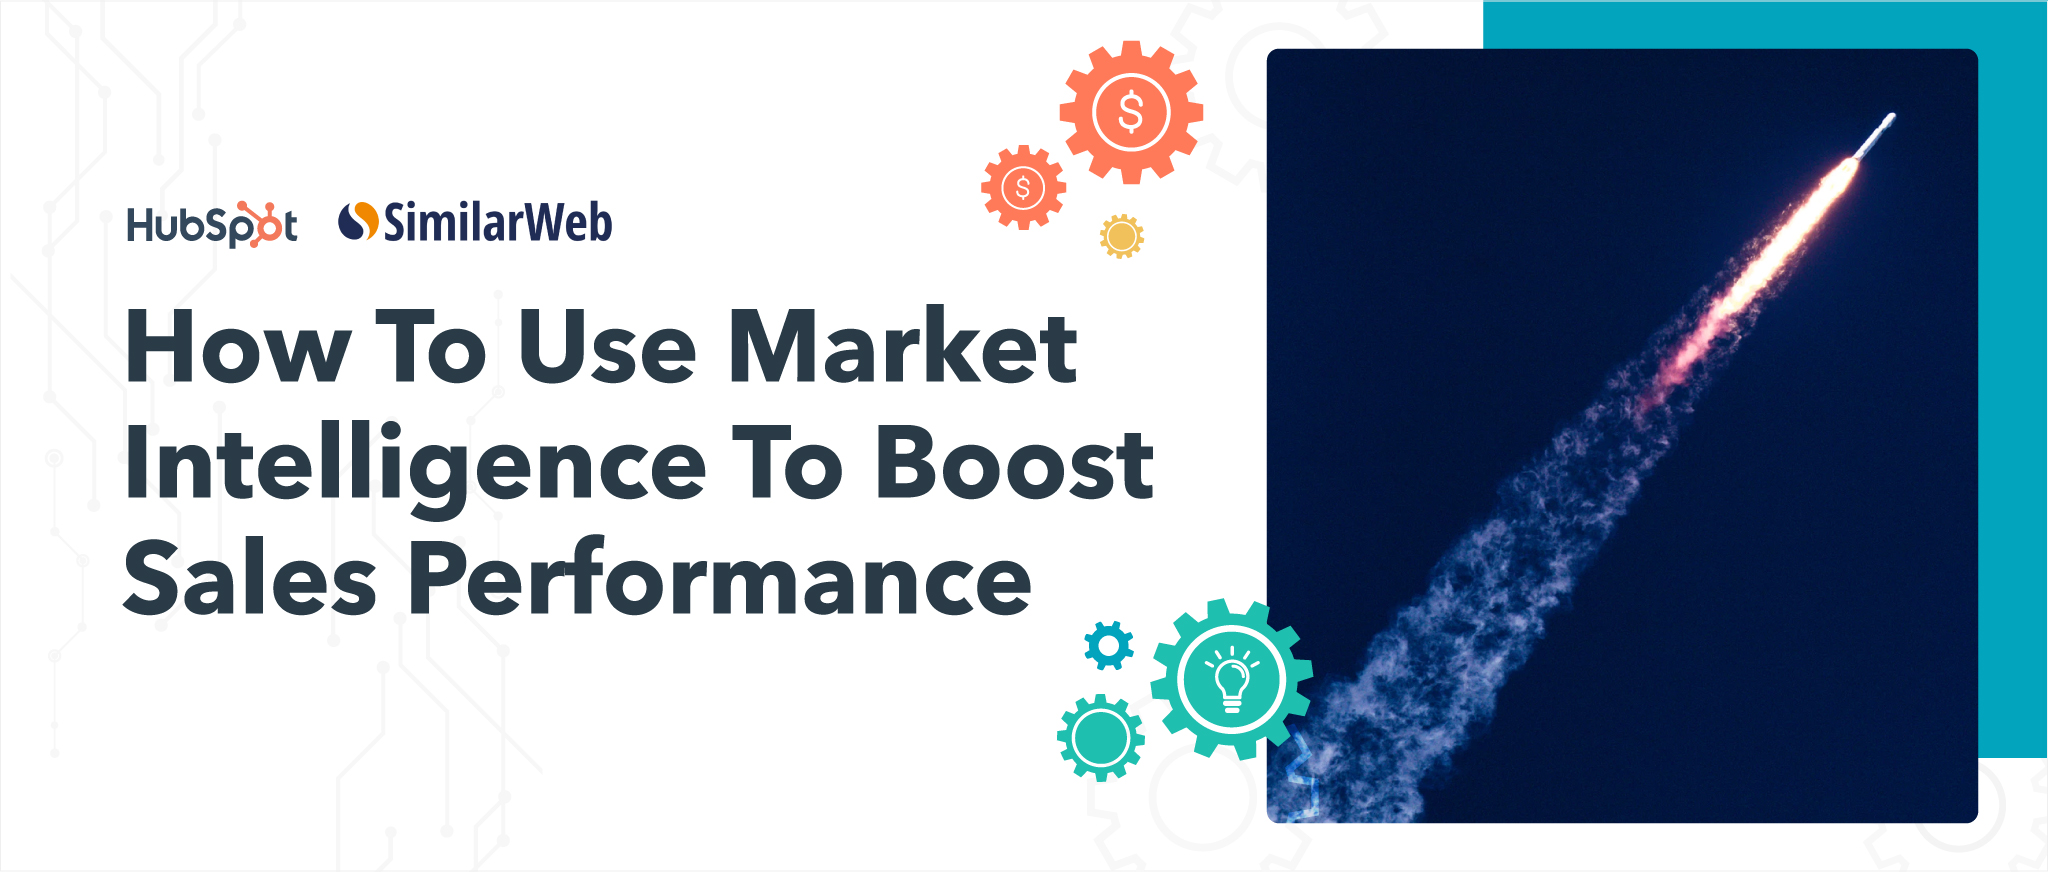 Using Marketing Intelligence To Boost Sales Performance